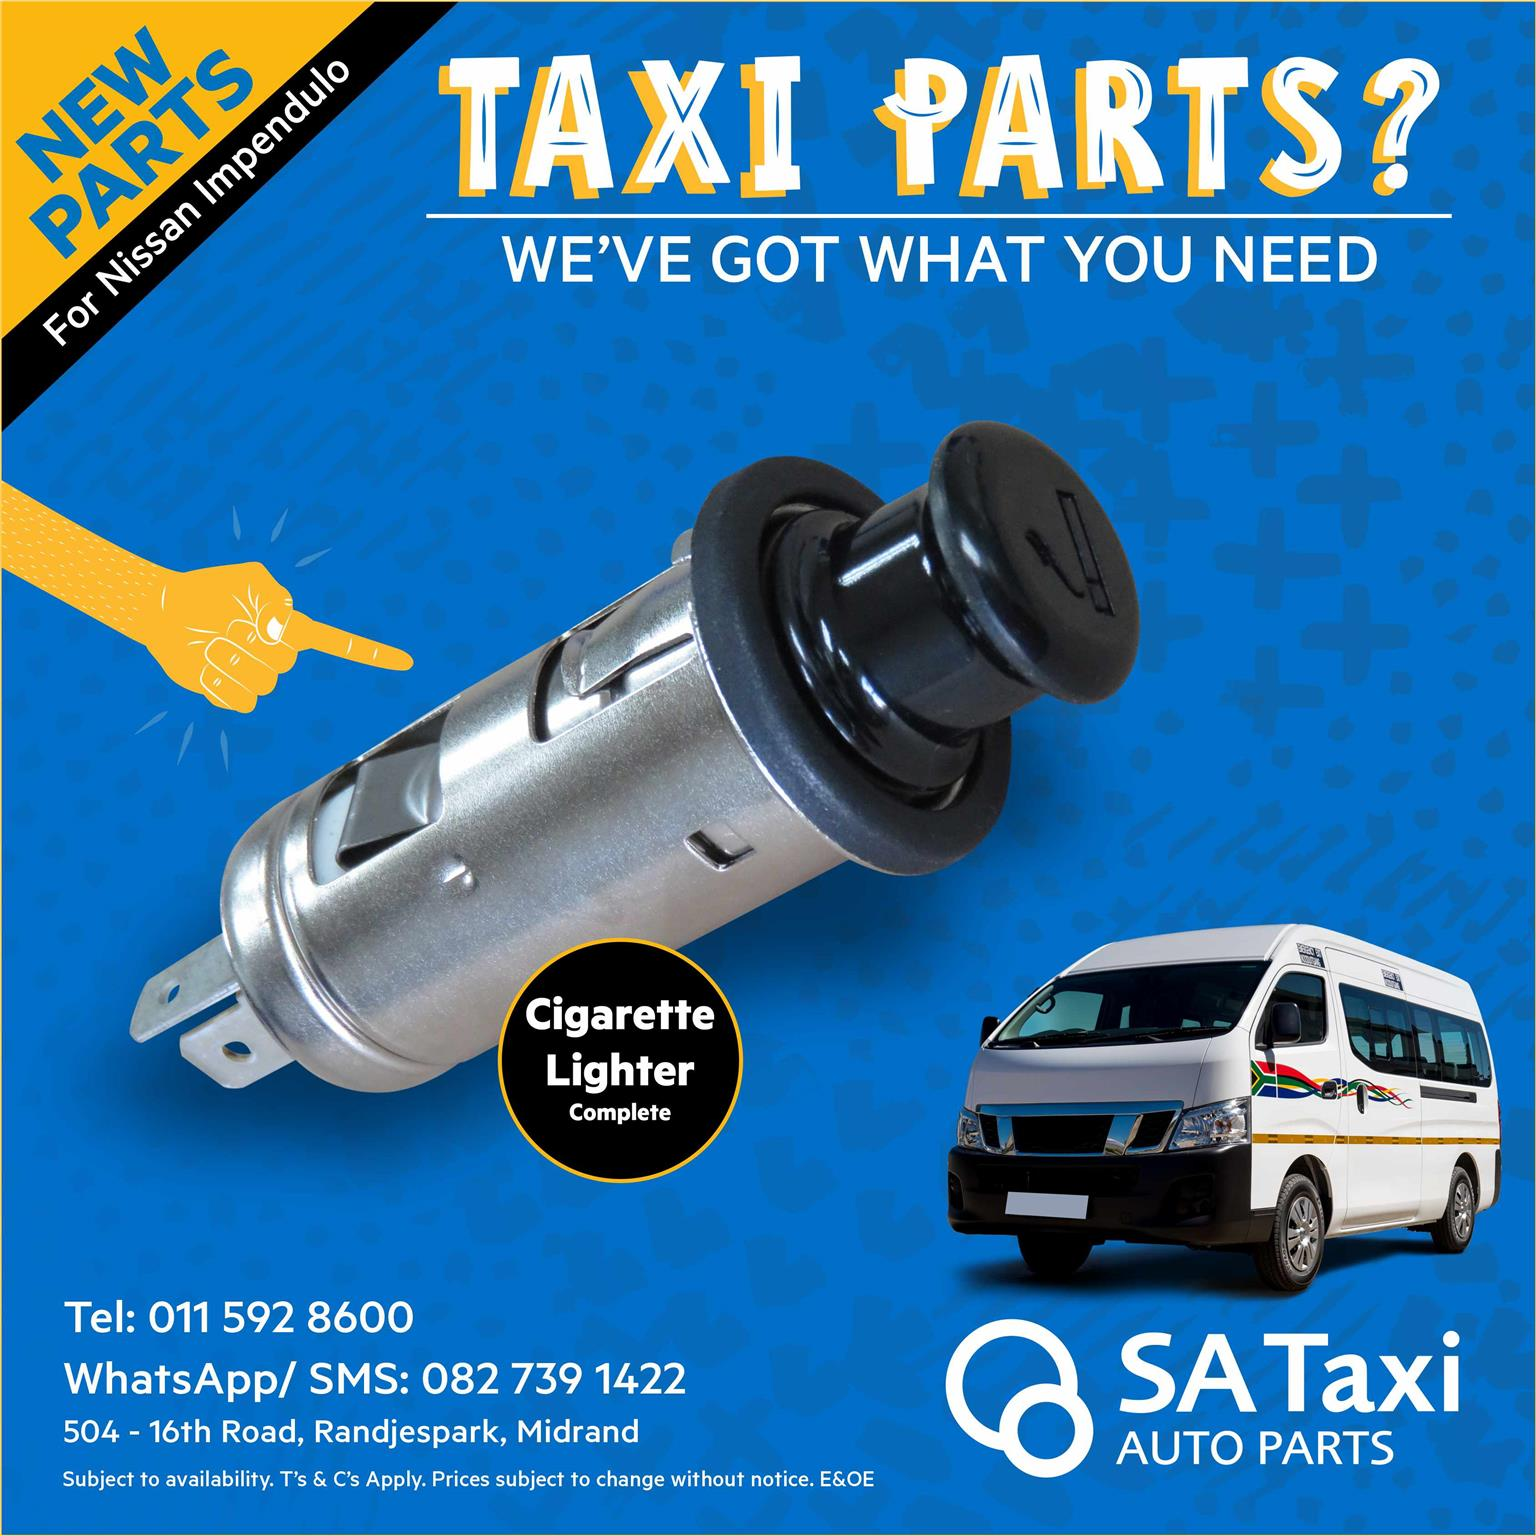 New Cigarette Lighter for Nissan NV350 Impendulo - SA Taxi Auto Parts quality taxi spares